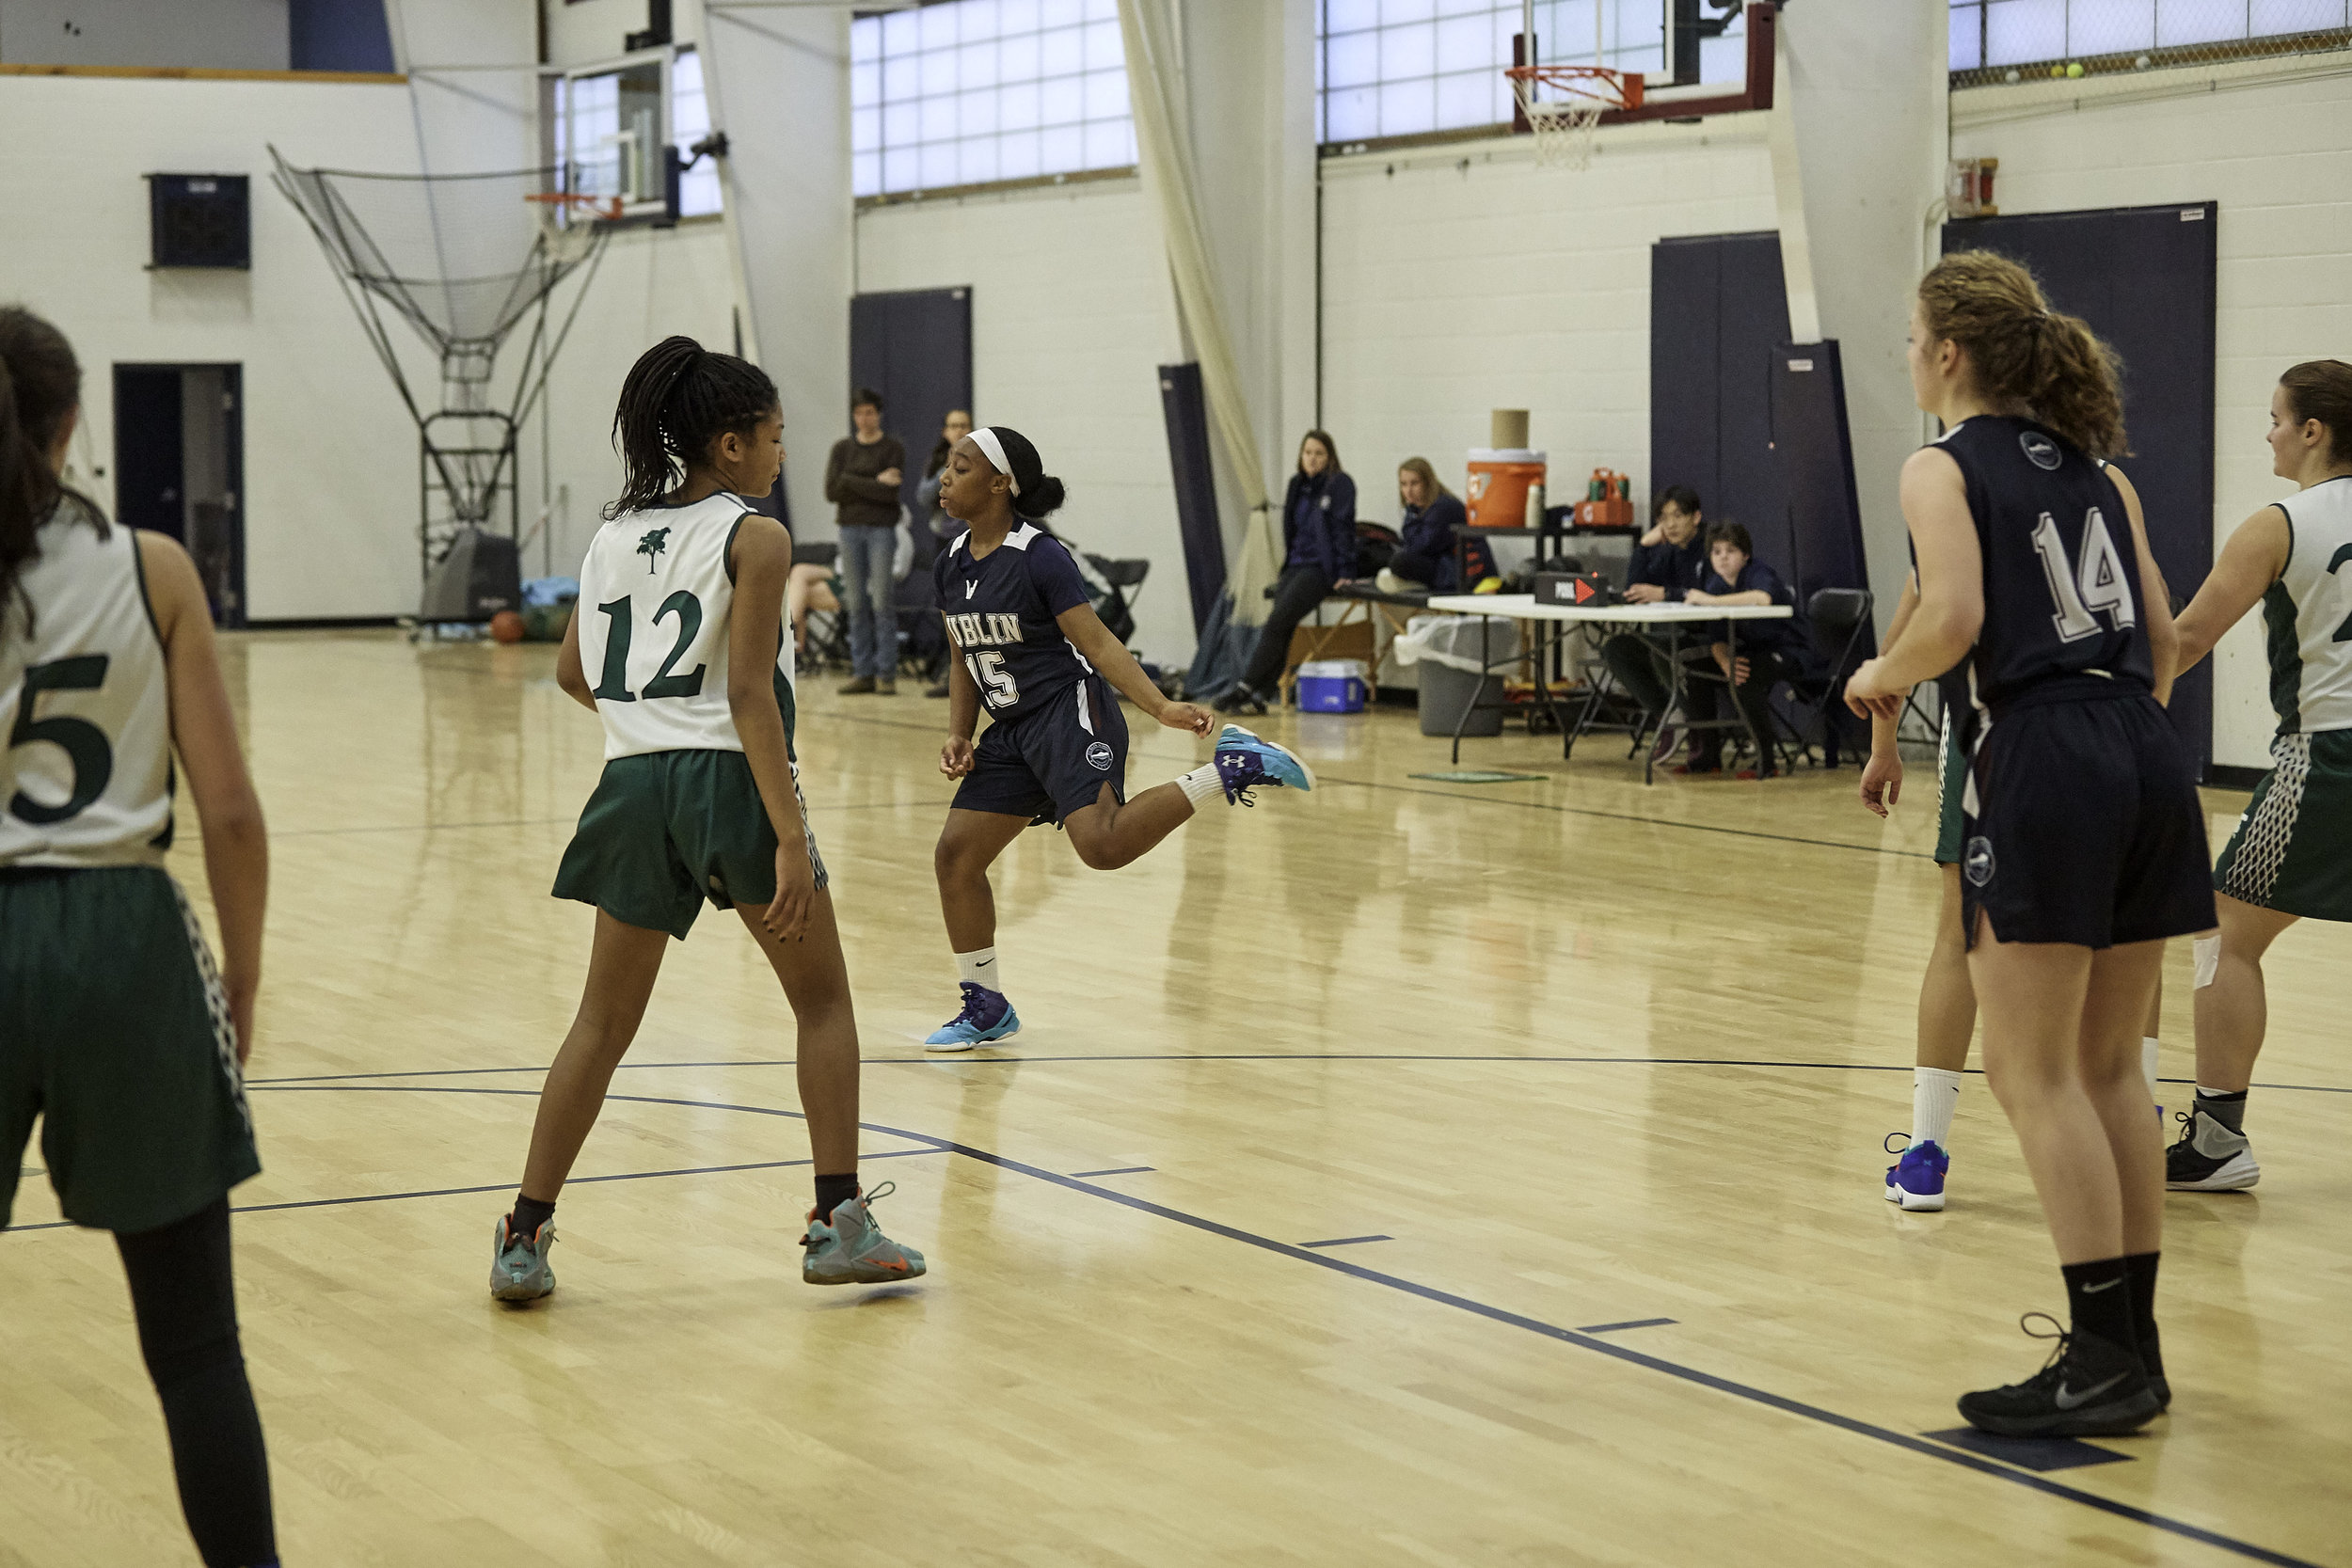 Basketball vs Putney School, February 9, 2019 - 167314.jpg